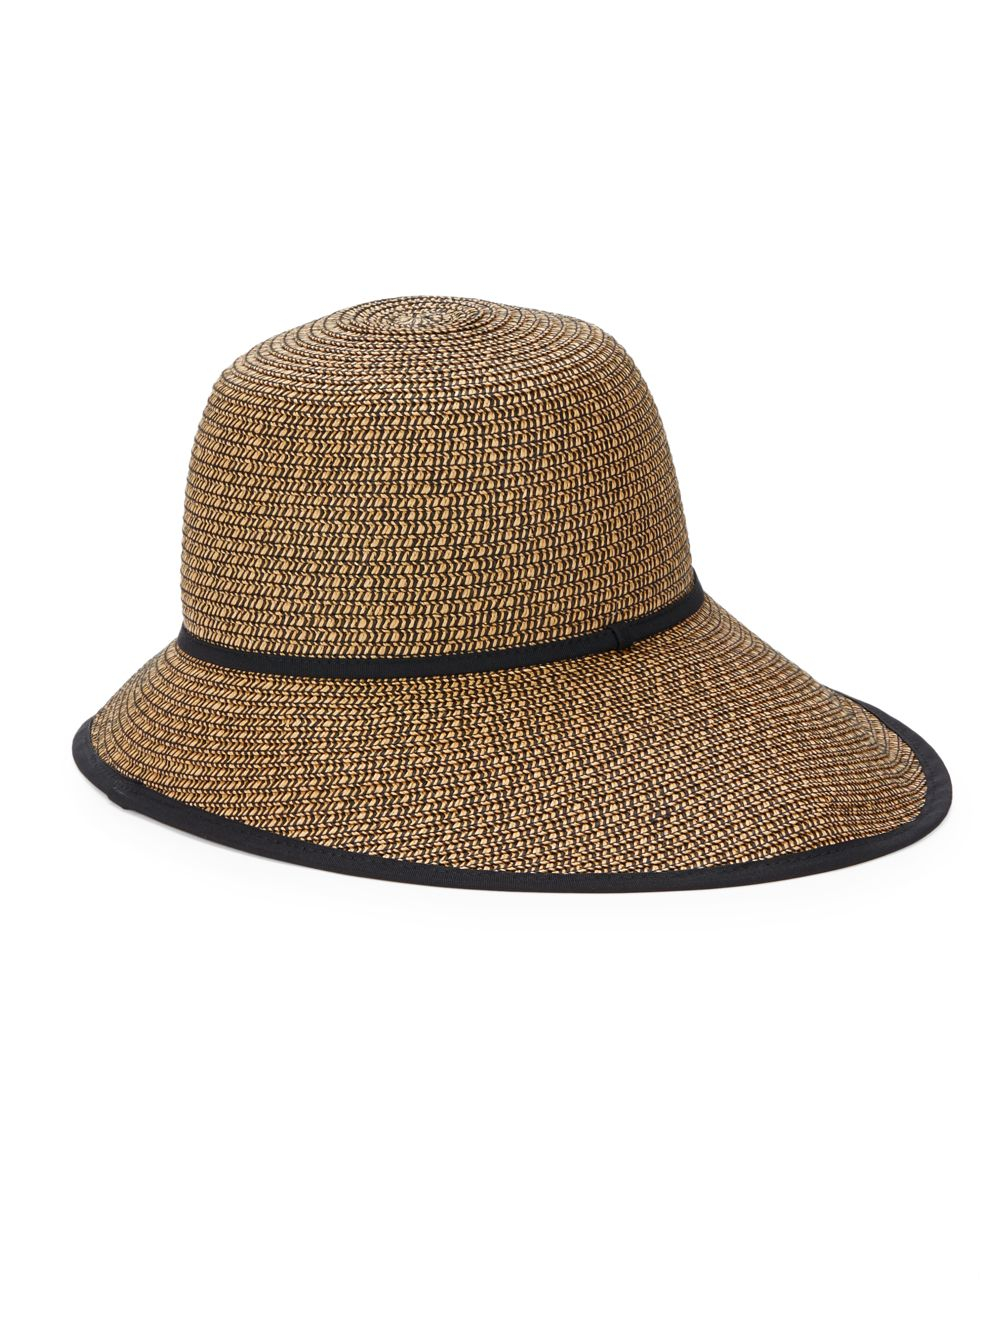 Saks Fifth Avenue Vintage Sun Hat in Brown - Lyst 05a68f64edf